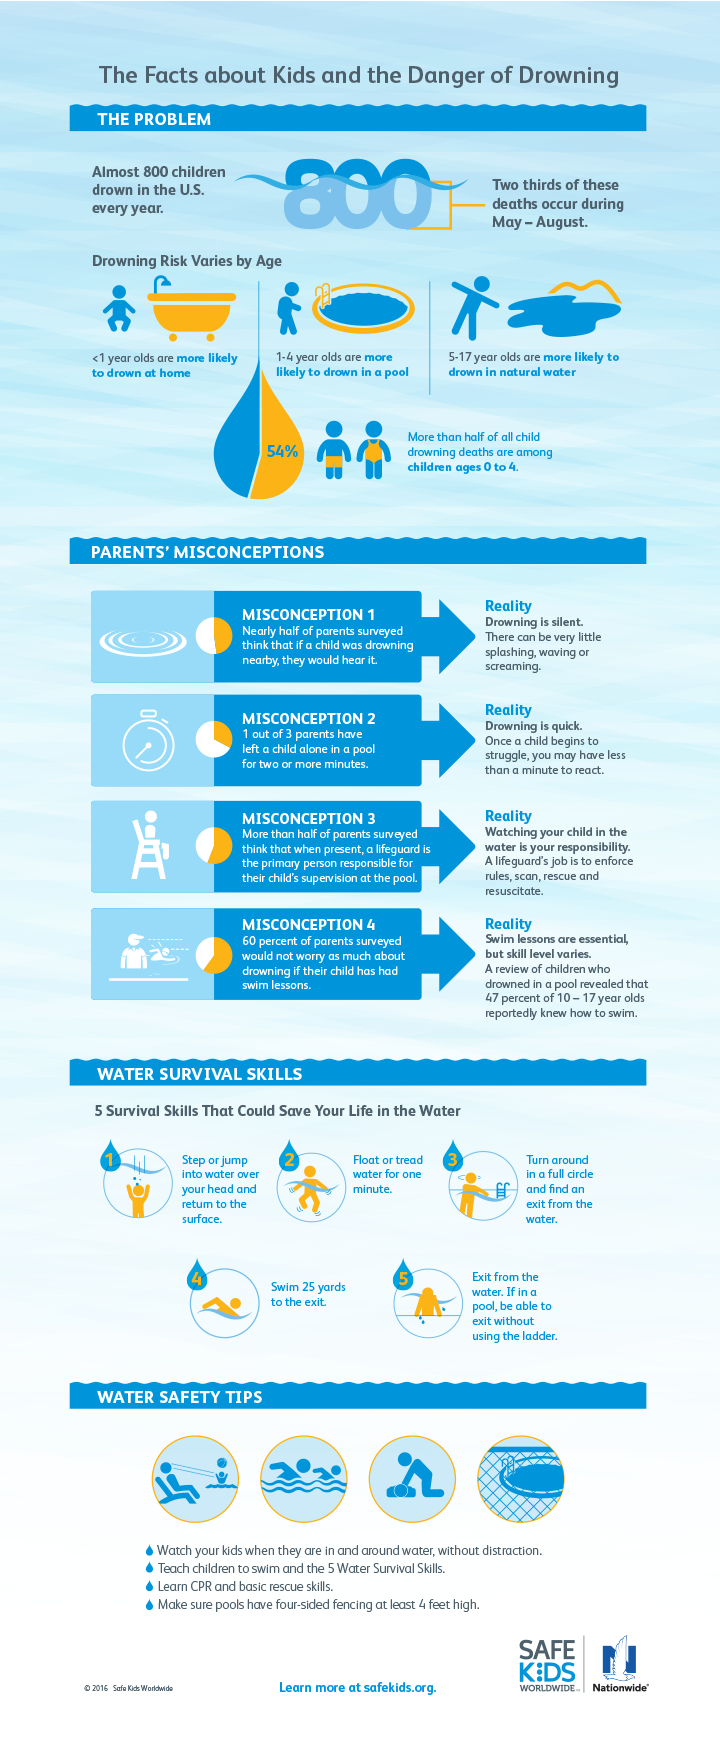 Water Safety for Kids: Get the Facts [Infographic]